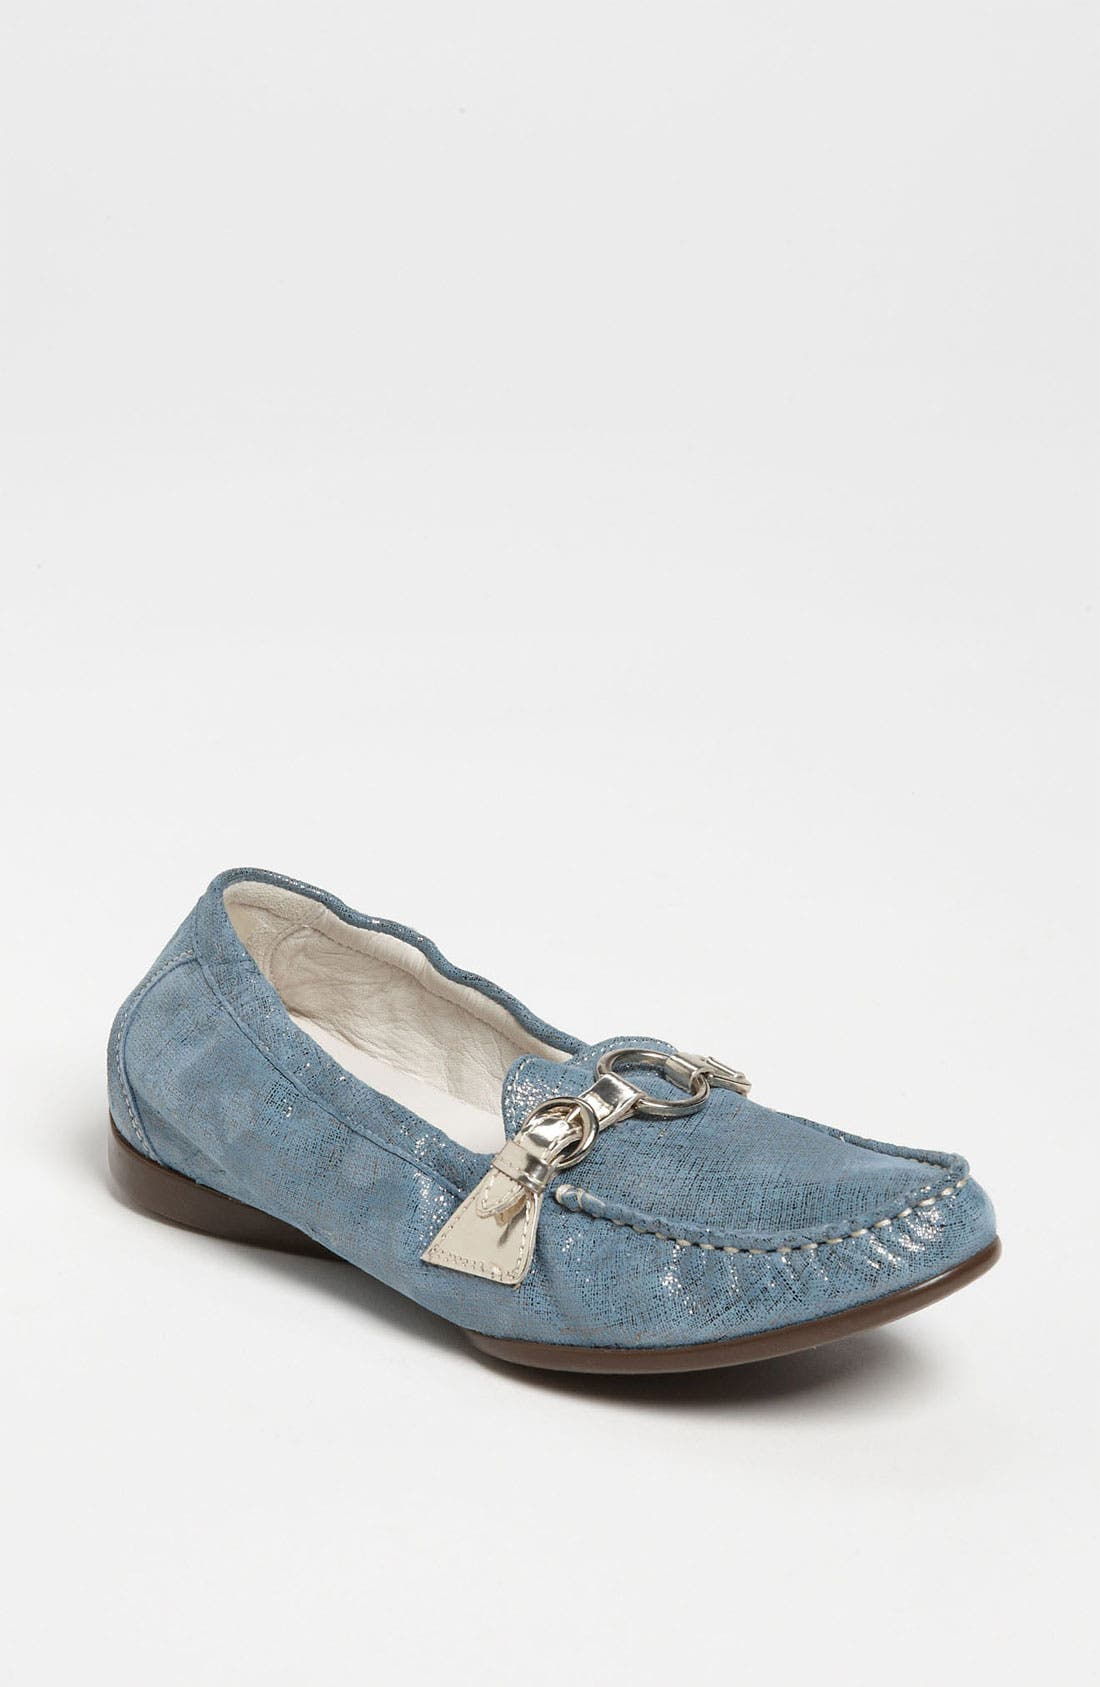 Alternate Image 1 Selected - Attilio Giusti Leombruni Ring Moc Loafer